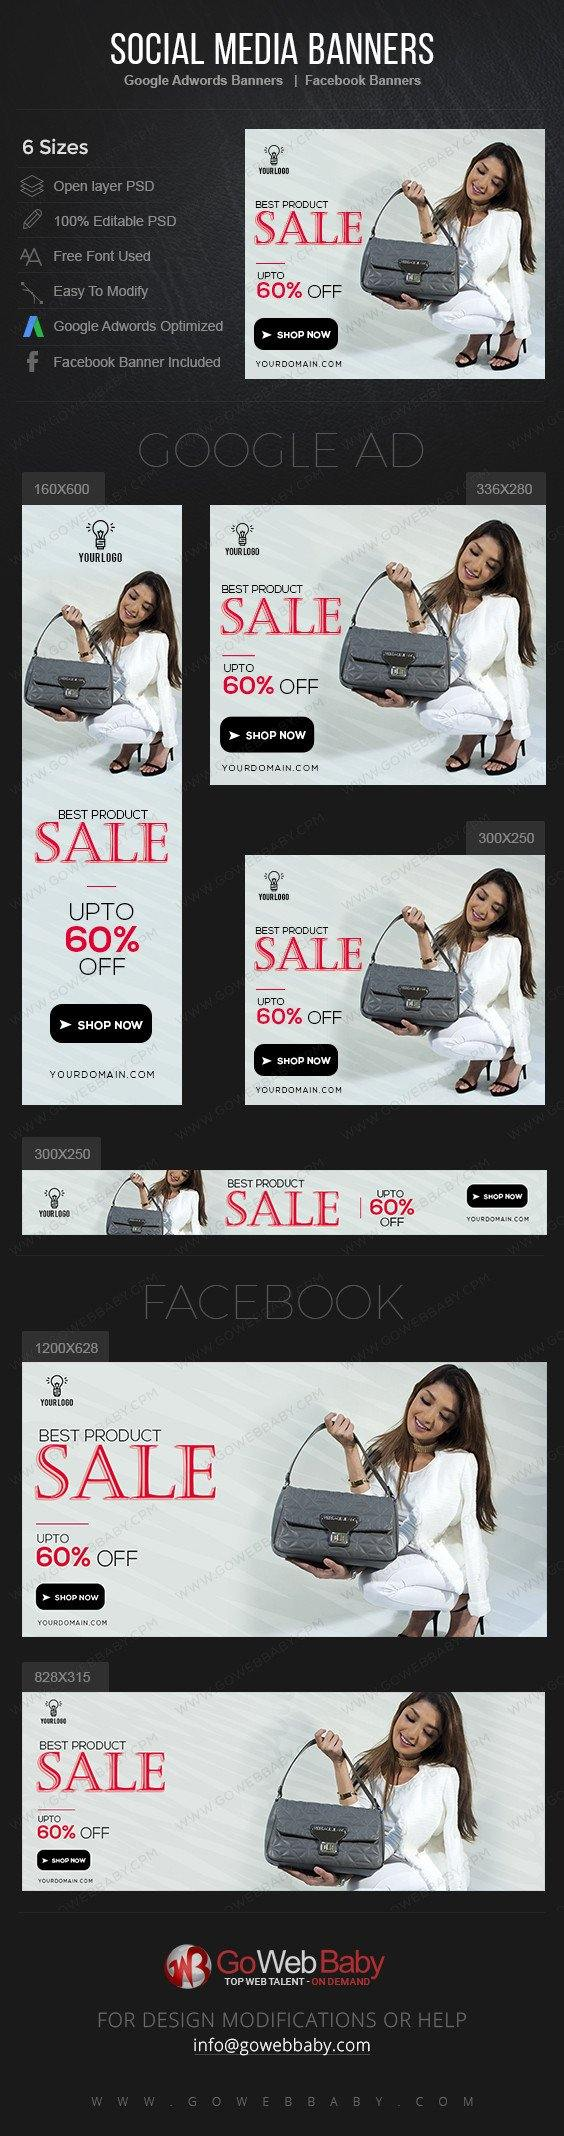 Google Adwords Display Banner With Facebook Banners - Elegant Bags For Website Marketing - GoWebBaby.Com